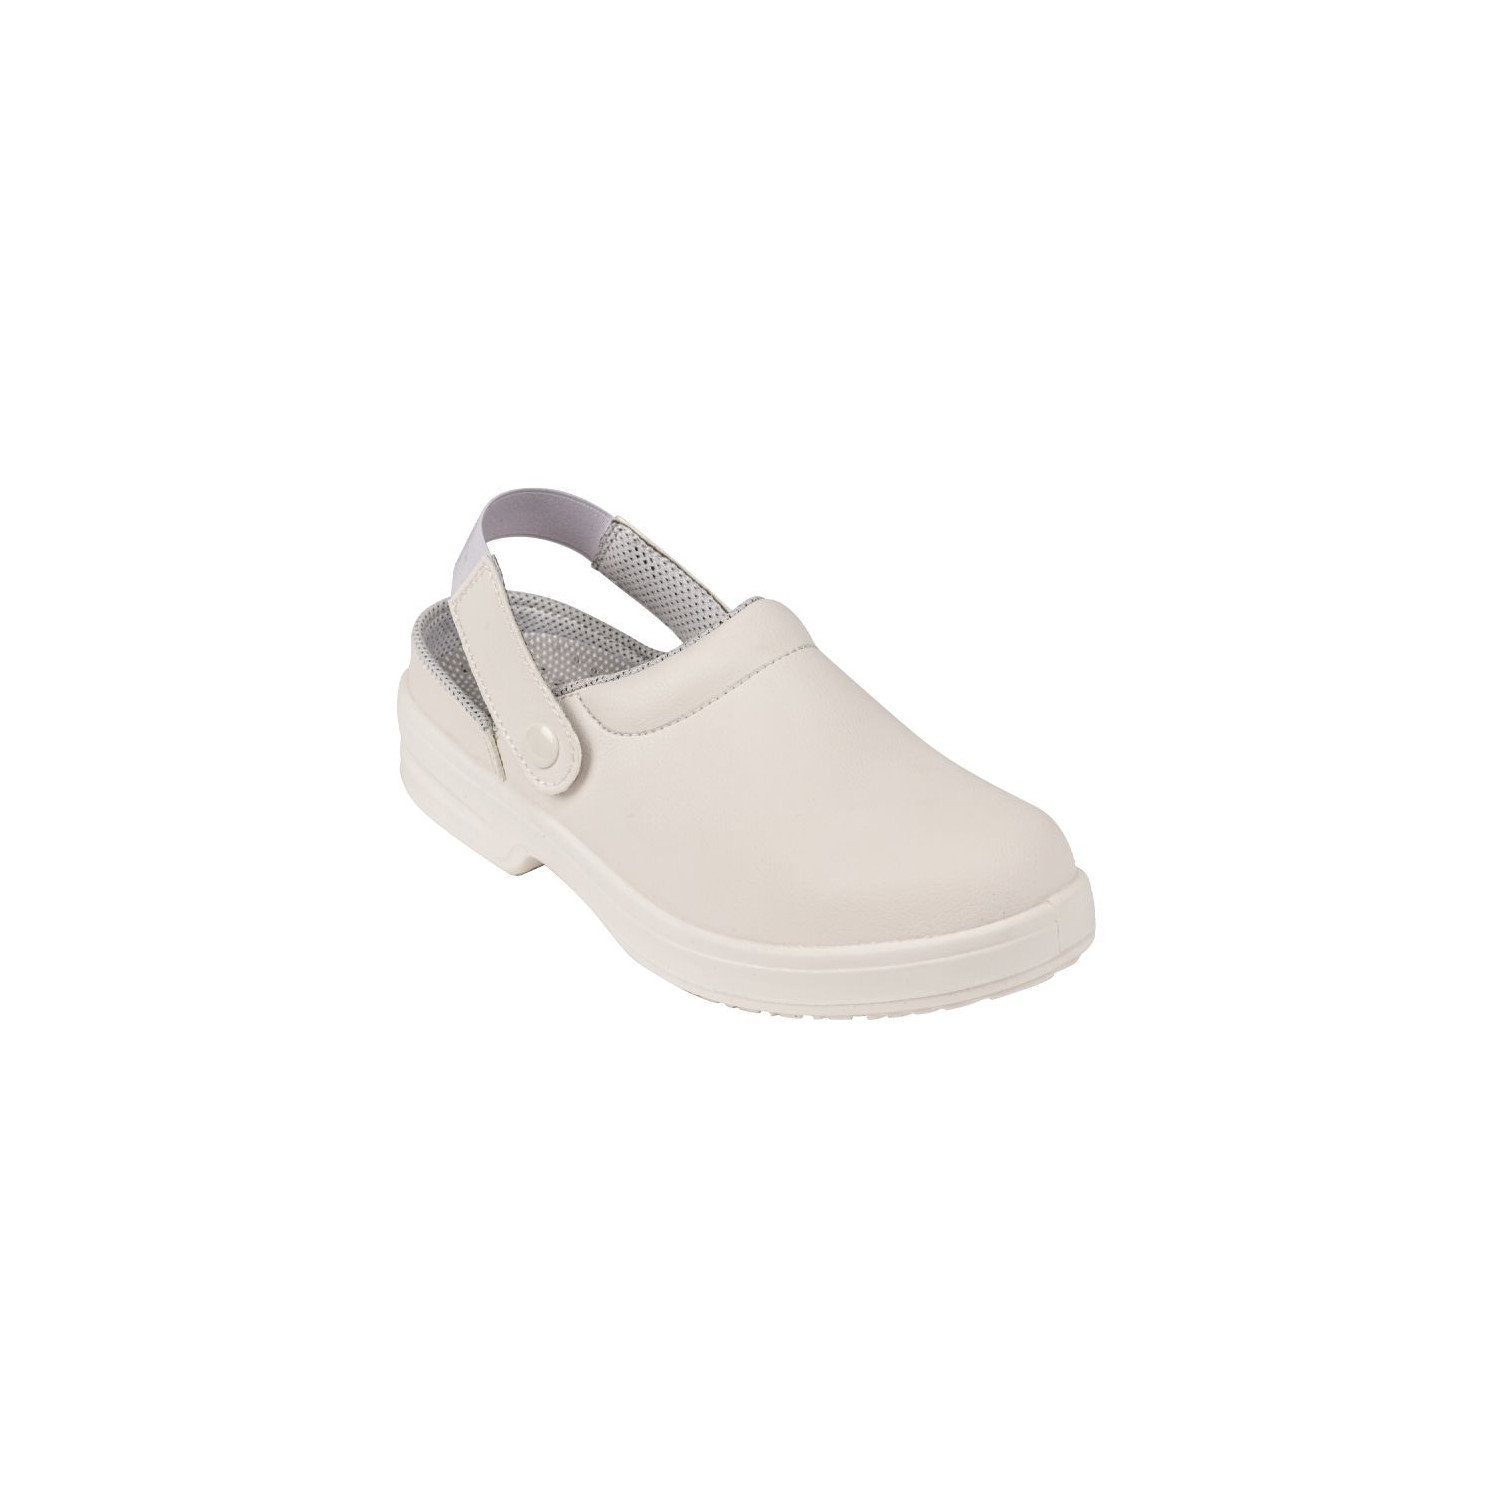 Sabots de sécurité unisexes Lites Blancs - Pointure 43 LITES SAFETY FOOTWEAR Nisbets Vêtements